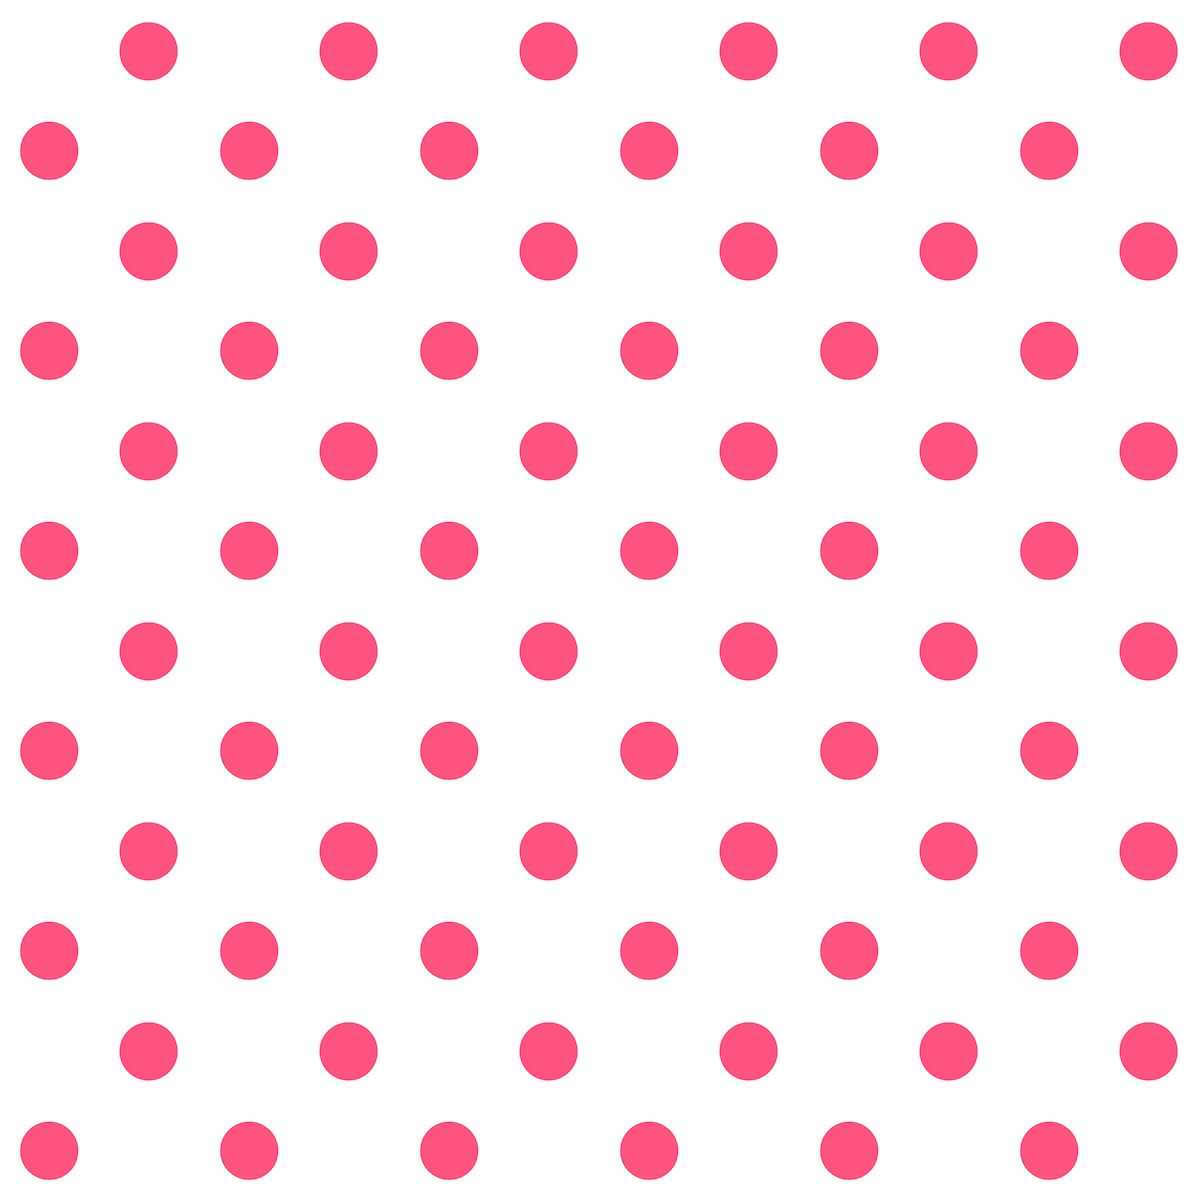 Free Digital Polka Dot Scrapbooking Papers  Ausdruckbare